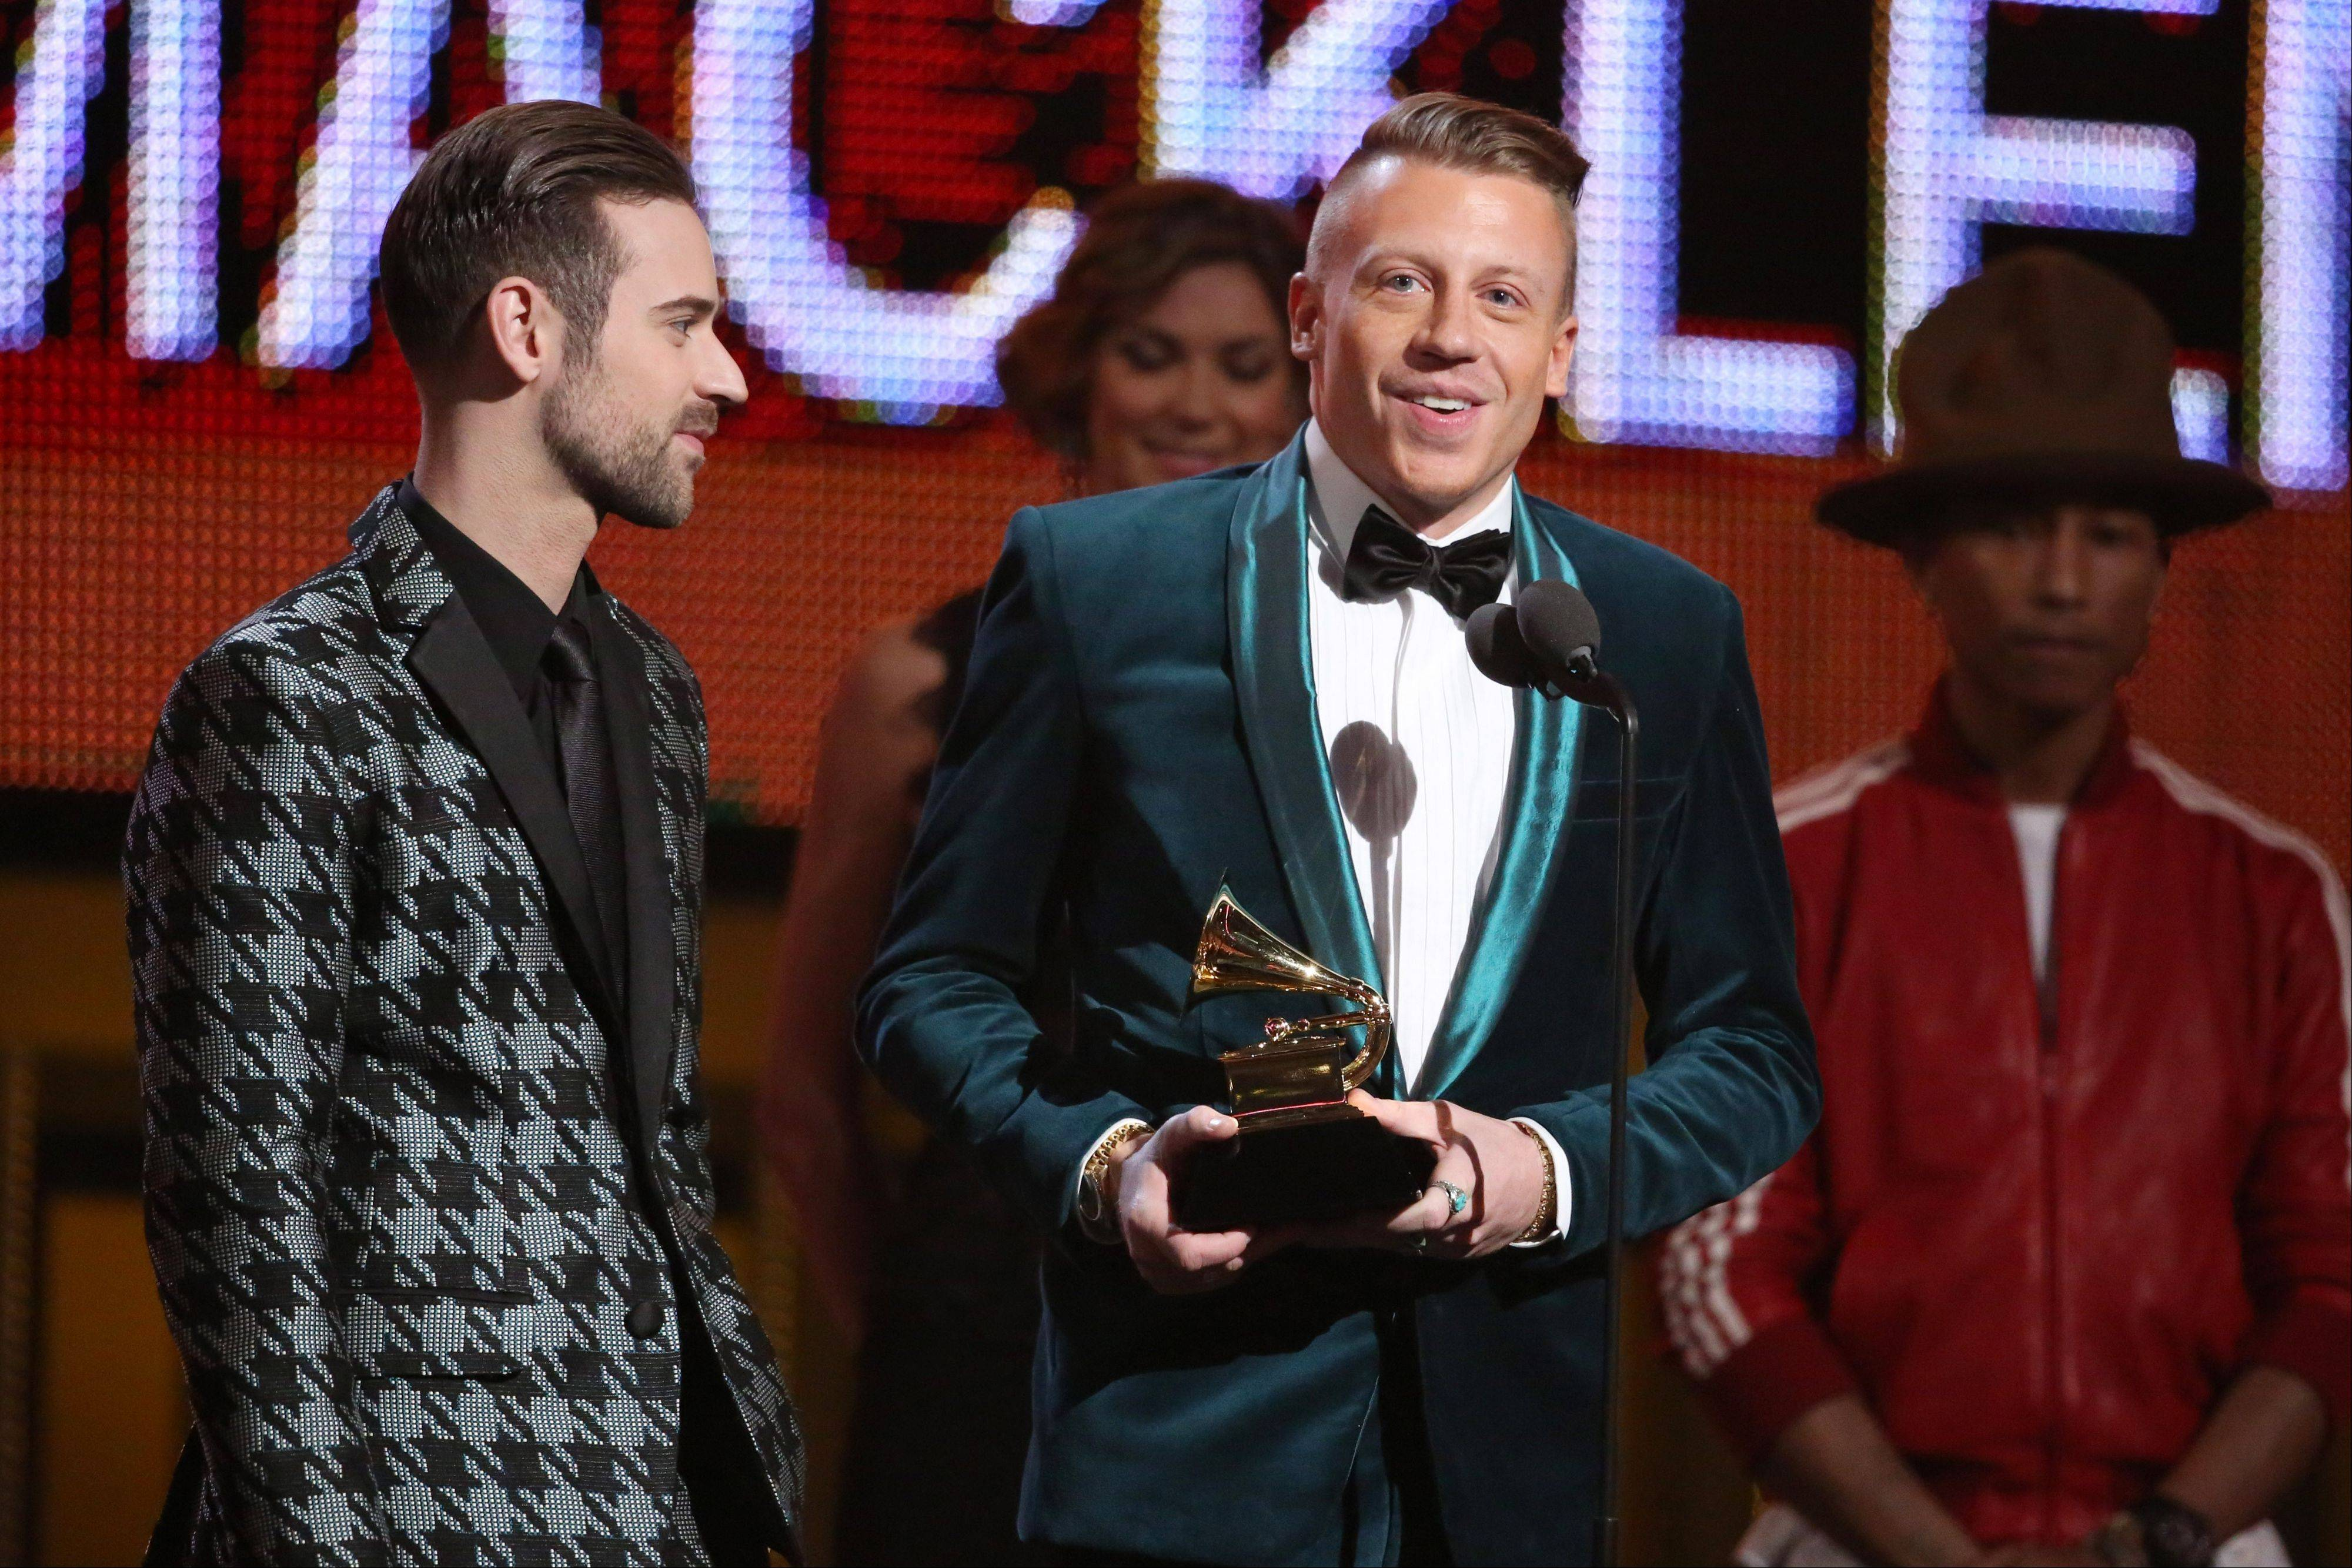 Ryan Lewis, left, and Macklemore accept the award for best new artist at the 56th annual Grammy Awards at Staples Center on Sunday in Los Angeles.